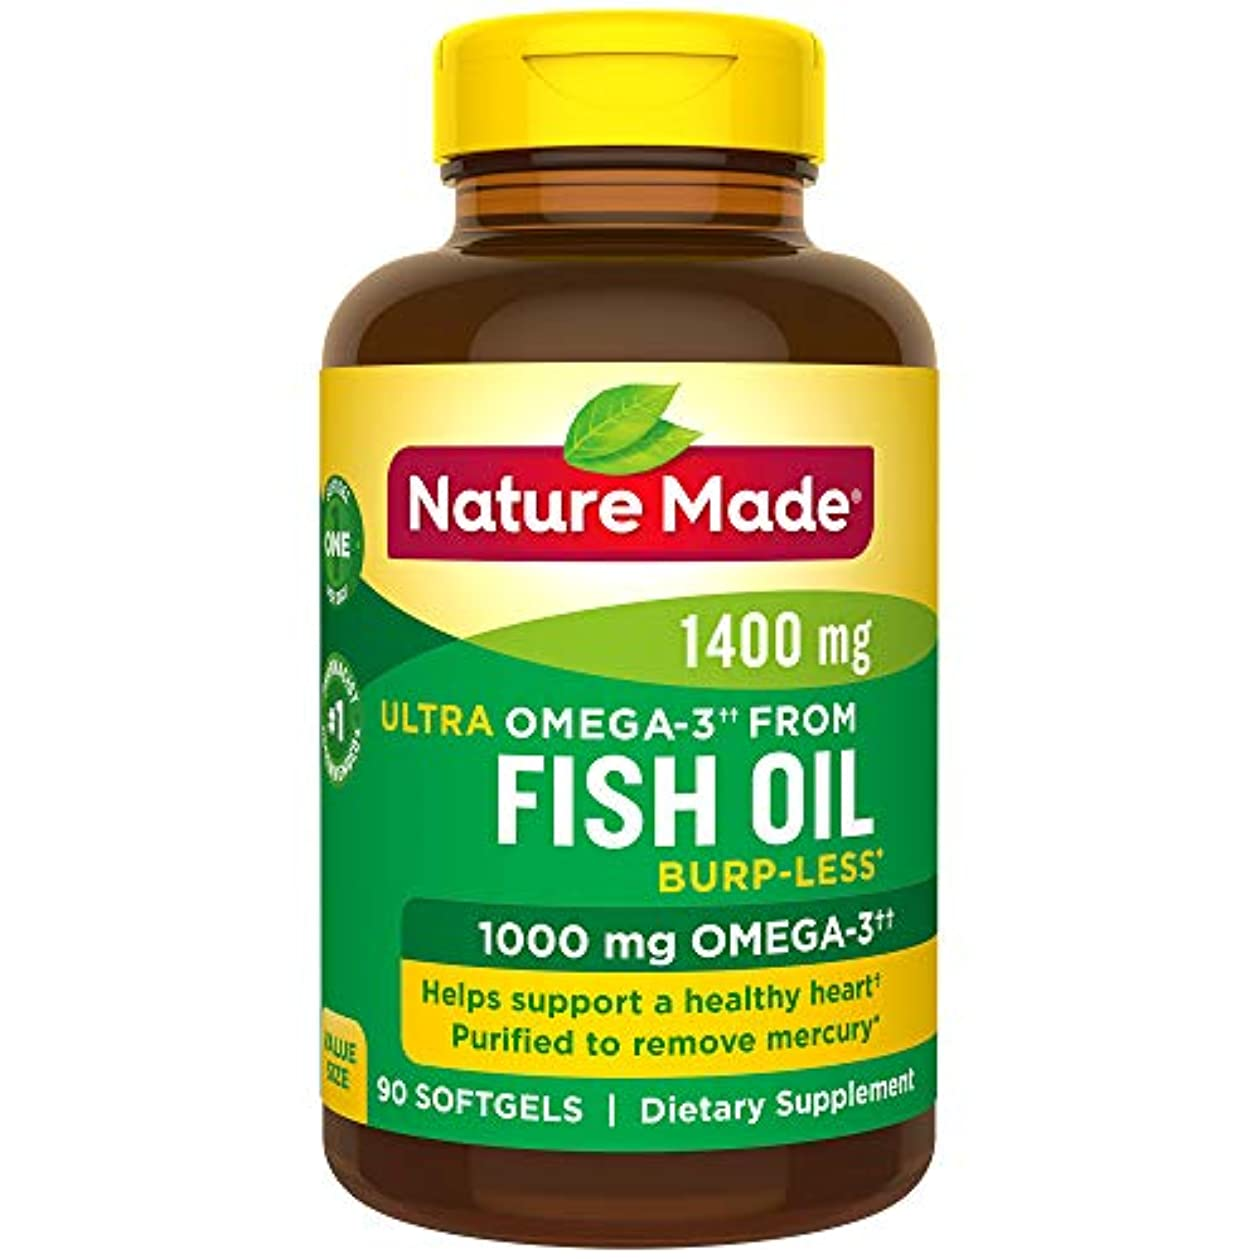 シャー桃オールNature Made Ultra Omega-3 Fish Oil Value Size Softgel, 1400 mg, 90 Count 海外直送品